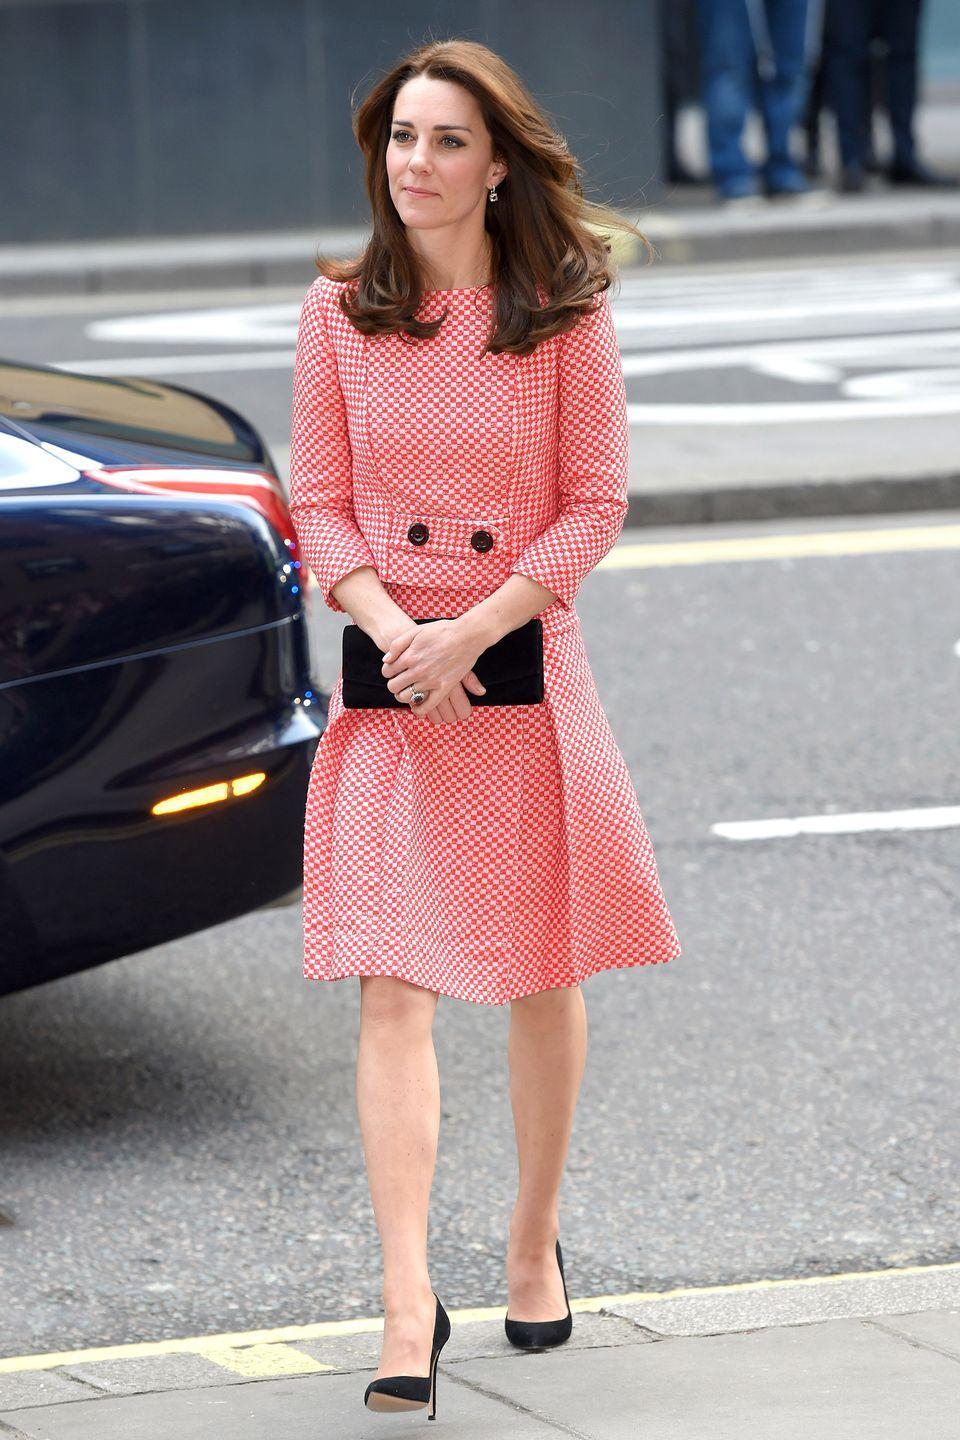 """<p>Middleton made a seamless transition into spring, sporting checkered separates in a bright sherbert hue by little-known British brand Epinone, causing <a href=""""http://fashion.hellomagazine.com/fashion-news/201603114618/kate-middleton-outfit-style-eponine-dress/"""" rel=""""nofollow noopener"""" target=""""_blank"""" data-ylk=""""slk:their site to crash"""" class=""""link rapid-noclick-resp"""">their site to crash</a> after stepping out in the ensemble. The 'Kate effect' strikes again. </p>"""